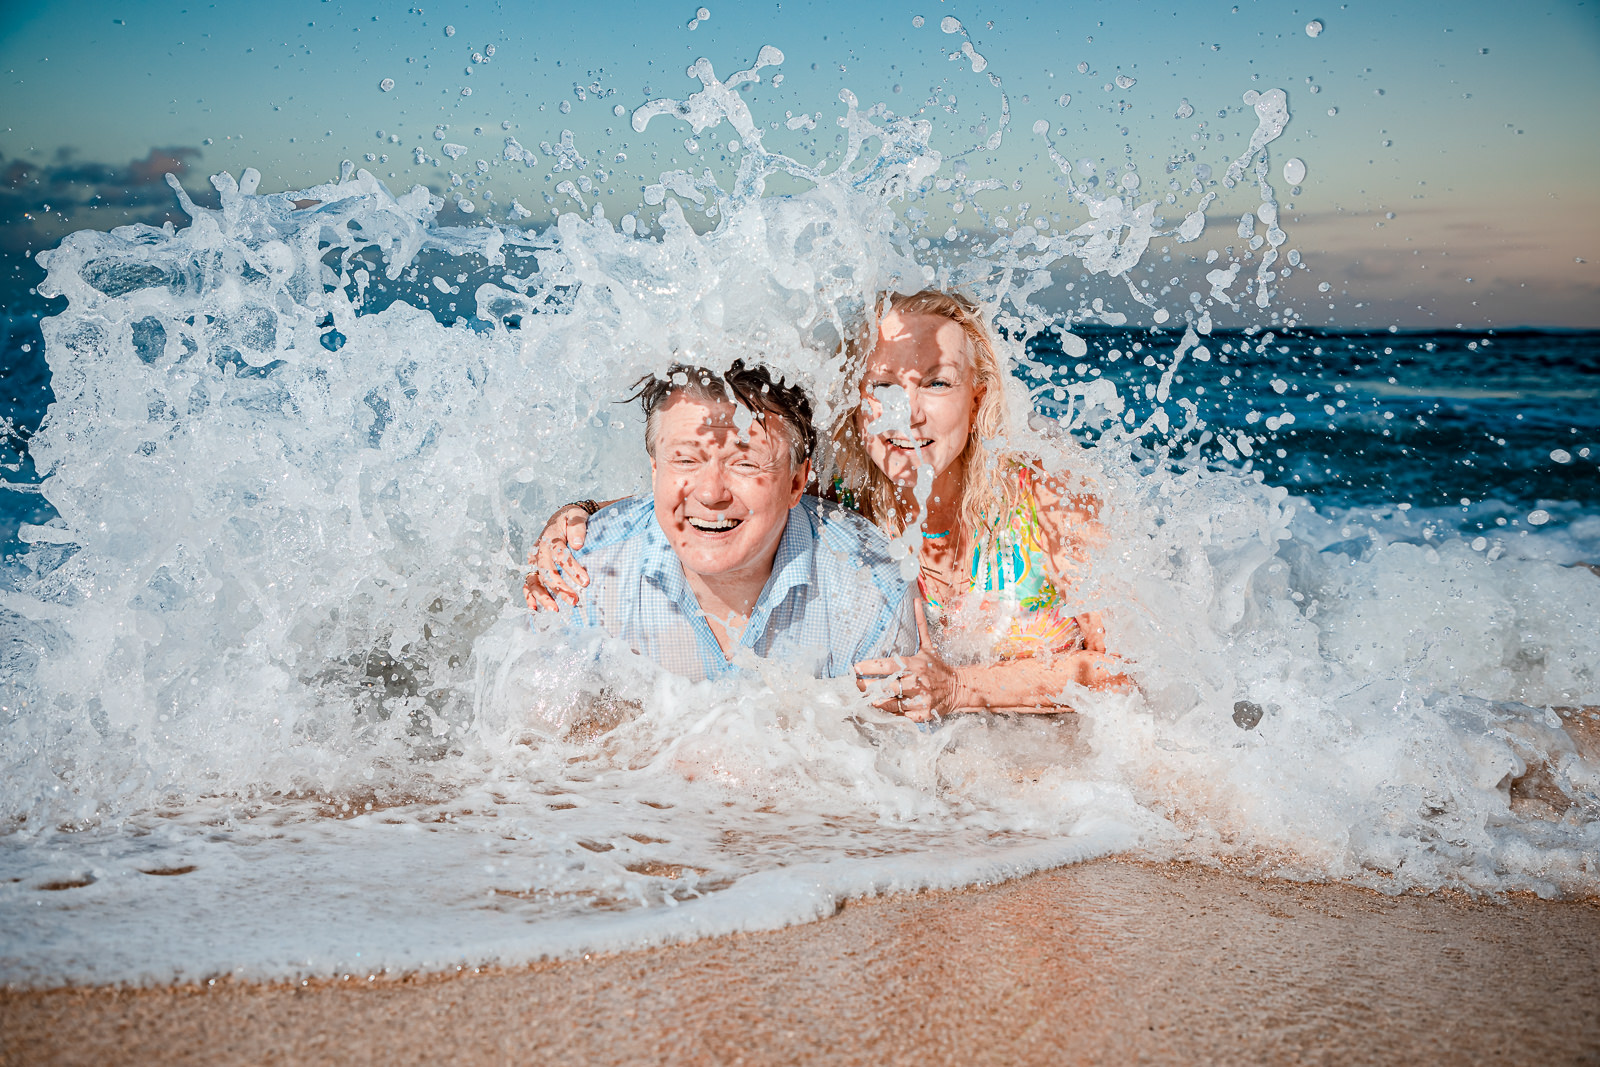 couples fun beach romance anniversary portrait photography hawaii